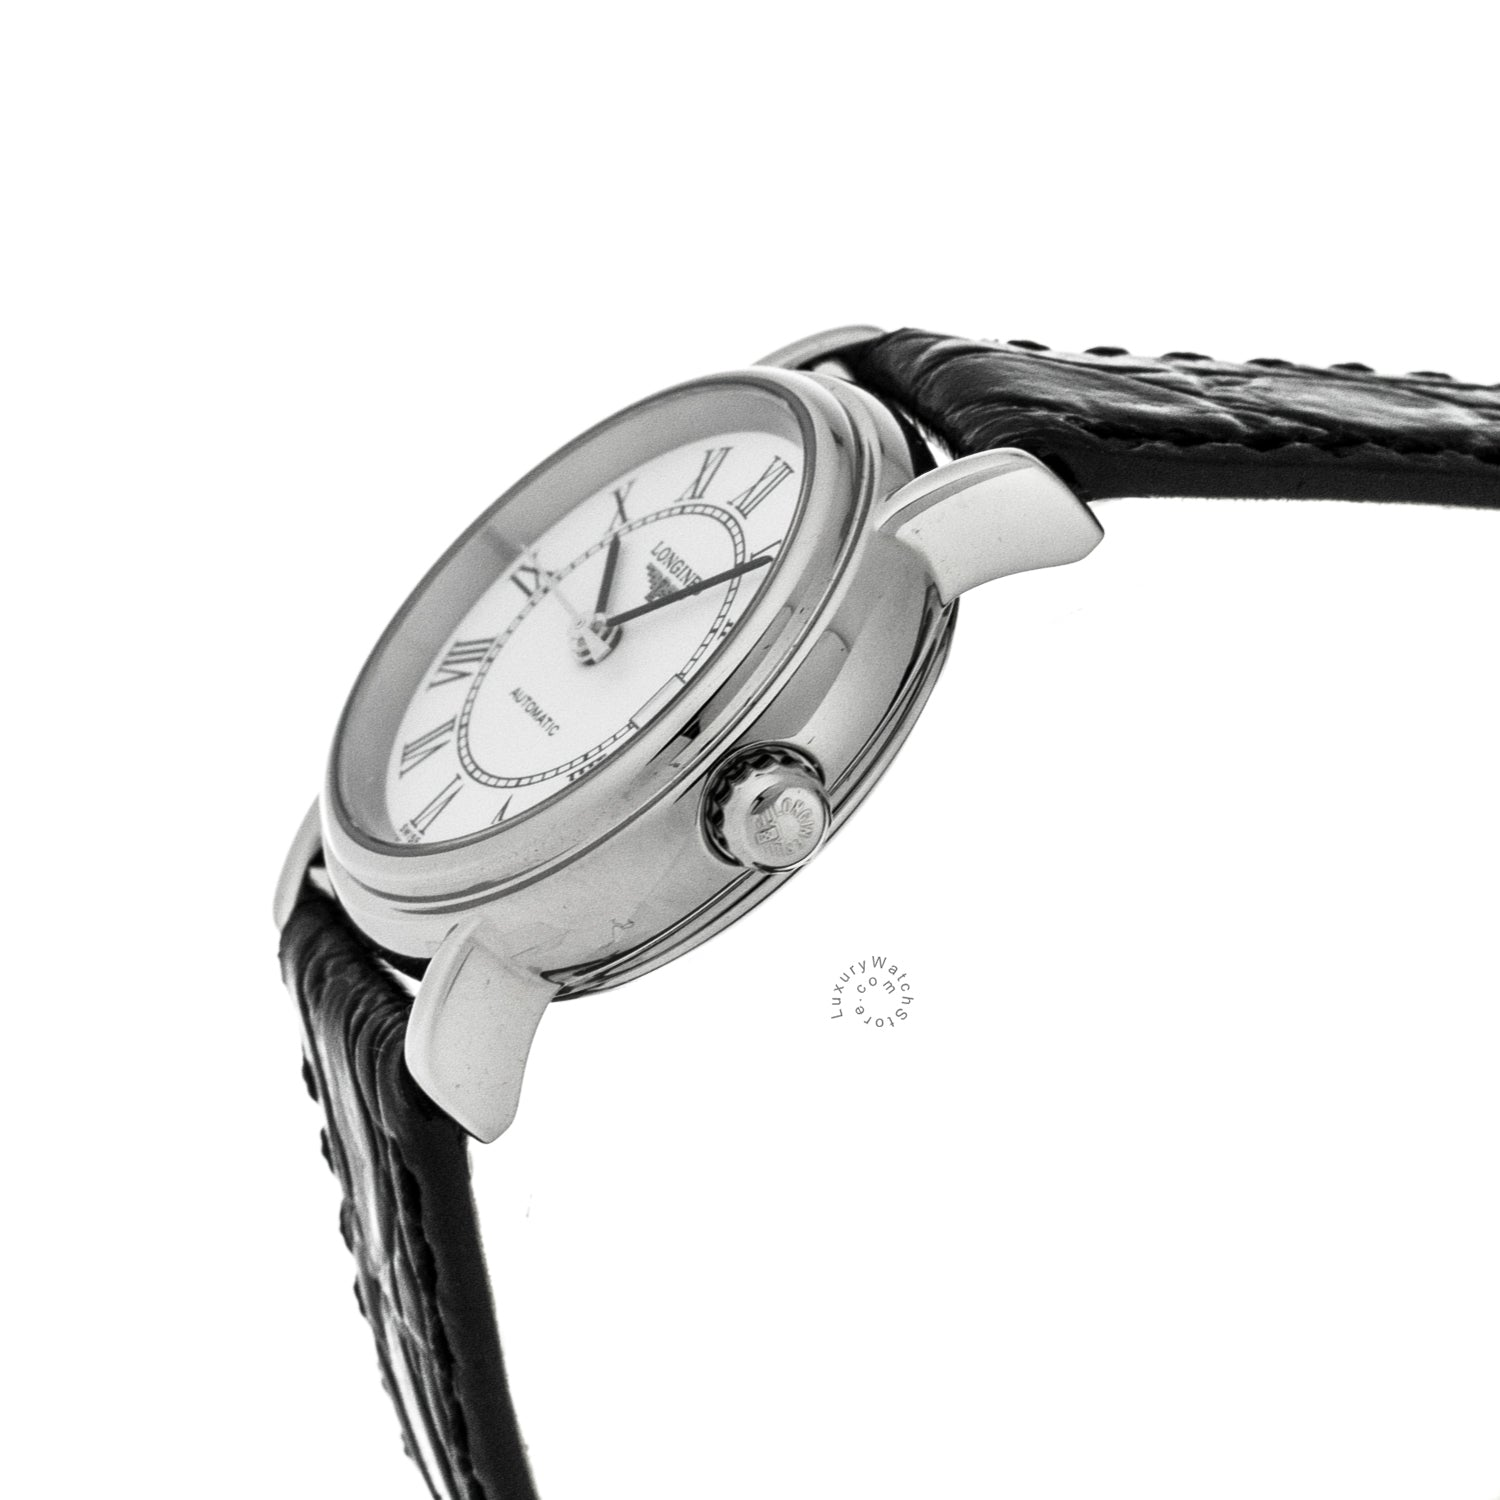 Longines Presence 25.5mm Automatic Stainless Steel Women's Watch L43214112